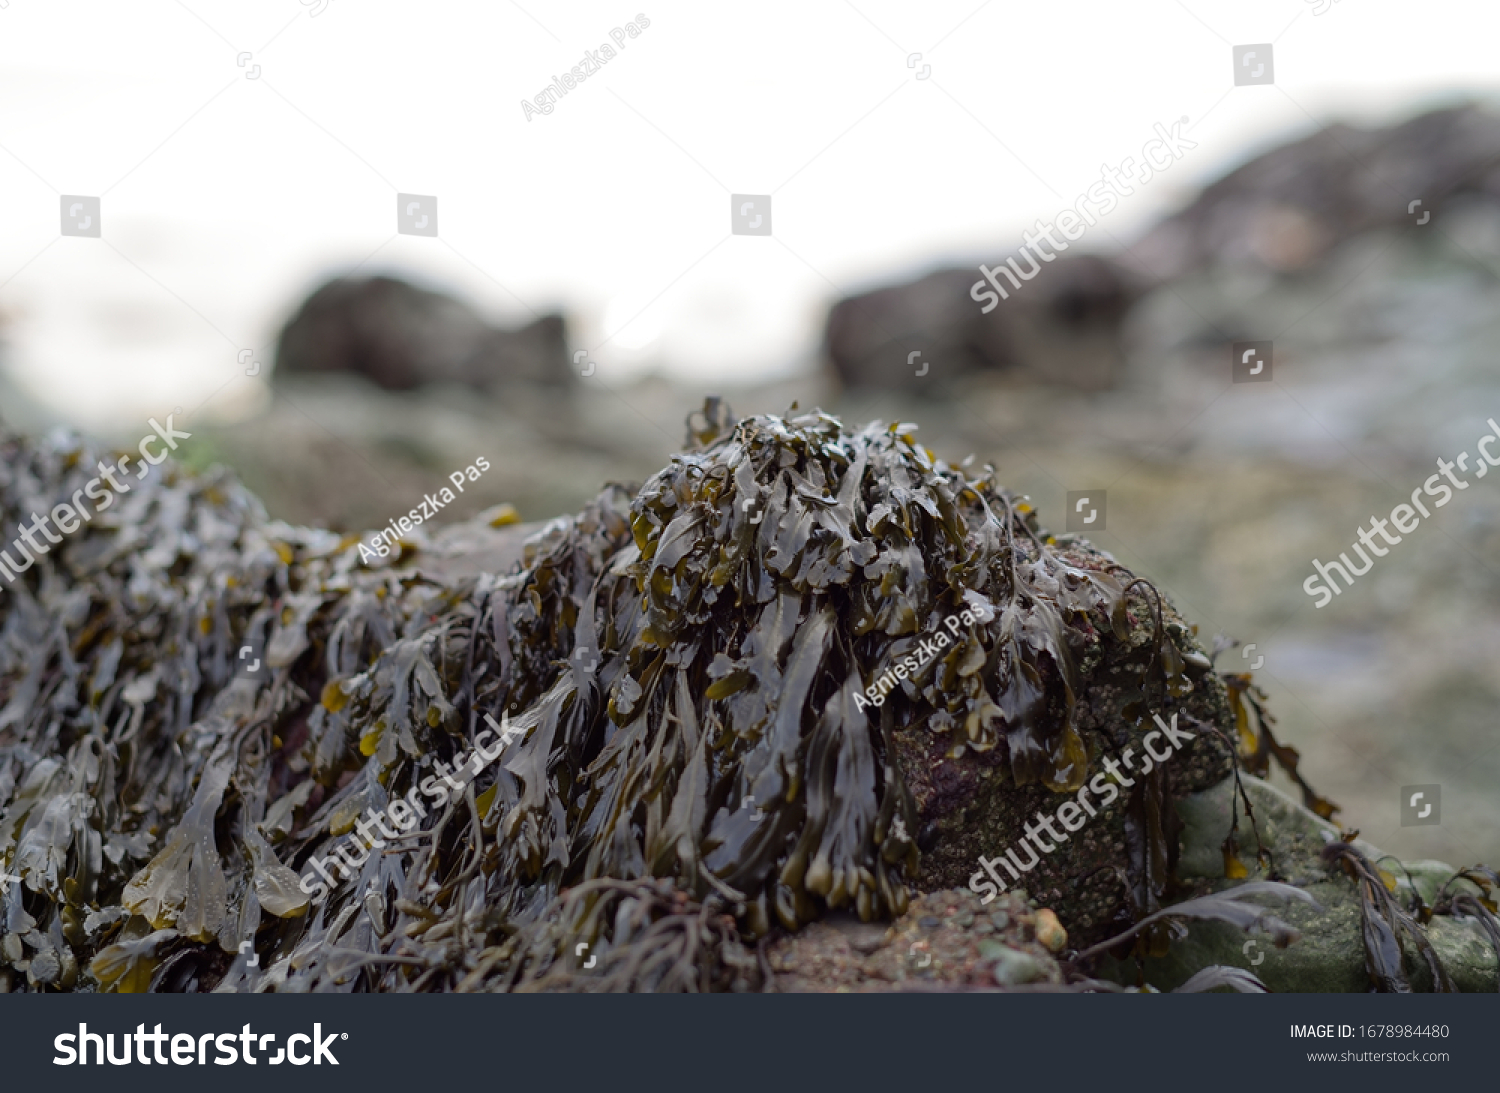 stock-photo-a-close-up-view-of-the-brown